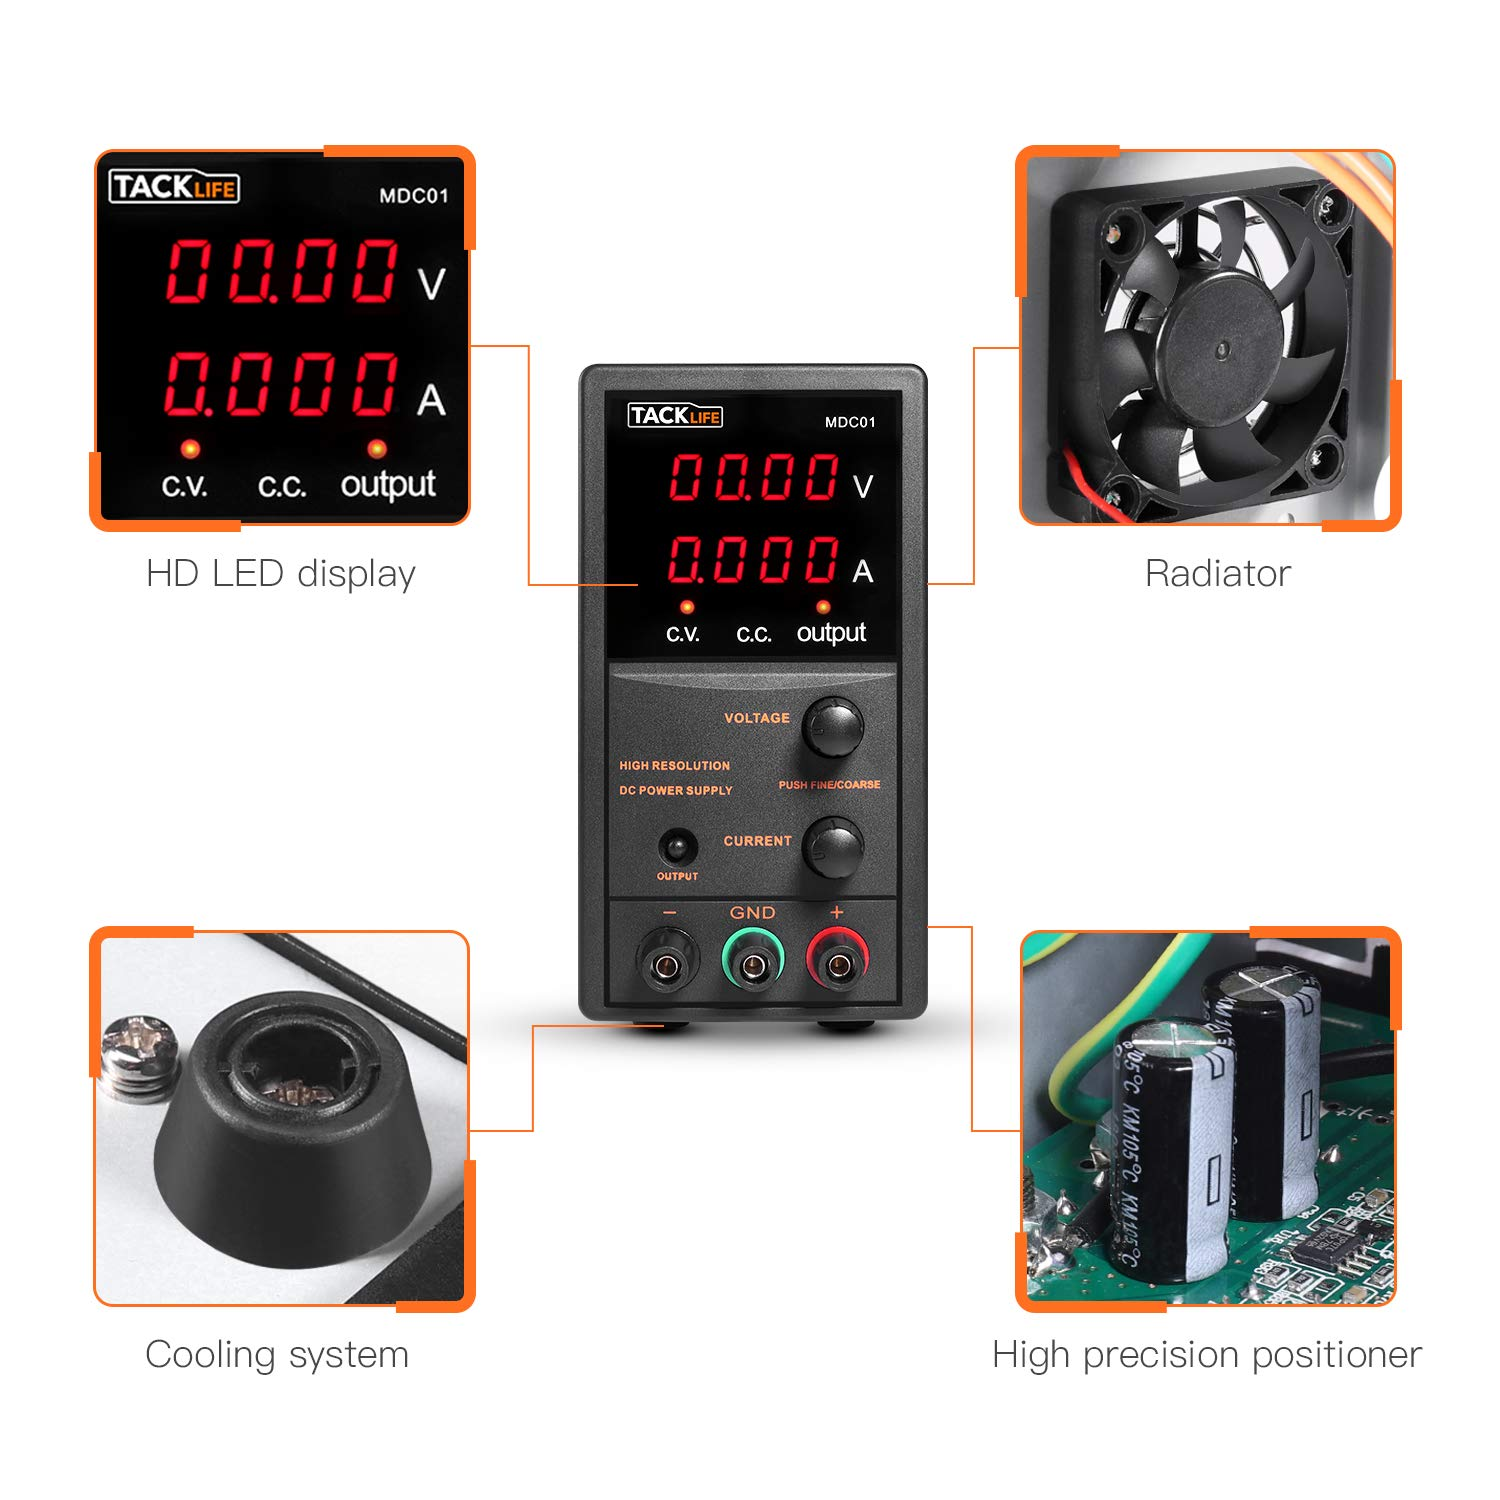 DC Power Supply Variable, Tacklife 4 digital LCD display (0-30V/0-5A) Switching DC Regulated Power Supply, Reverse polarity/high temperature protection, with 110V/115CM Alligator Leads by TACKLIFE (Image #4)